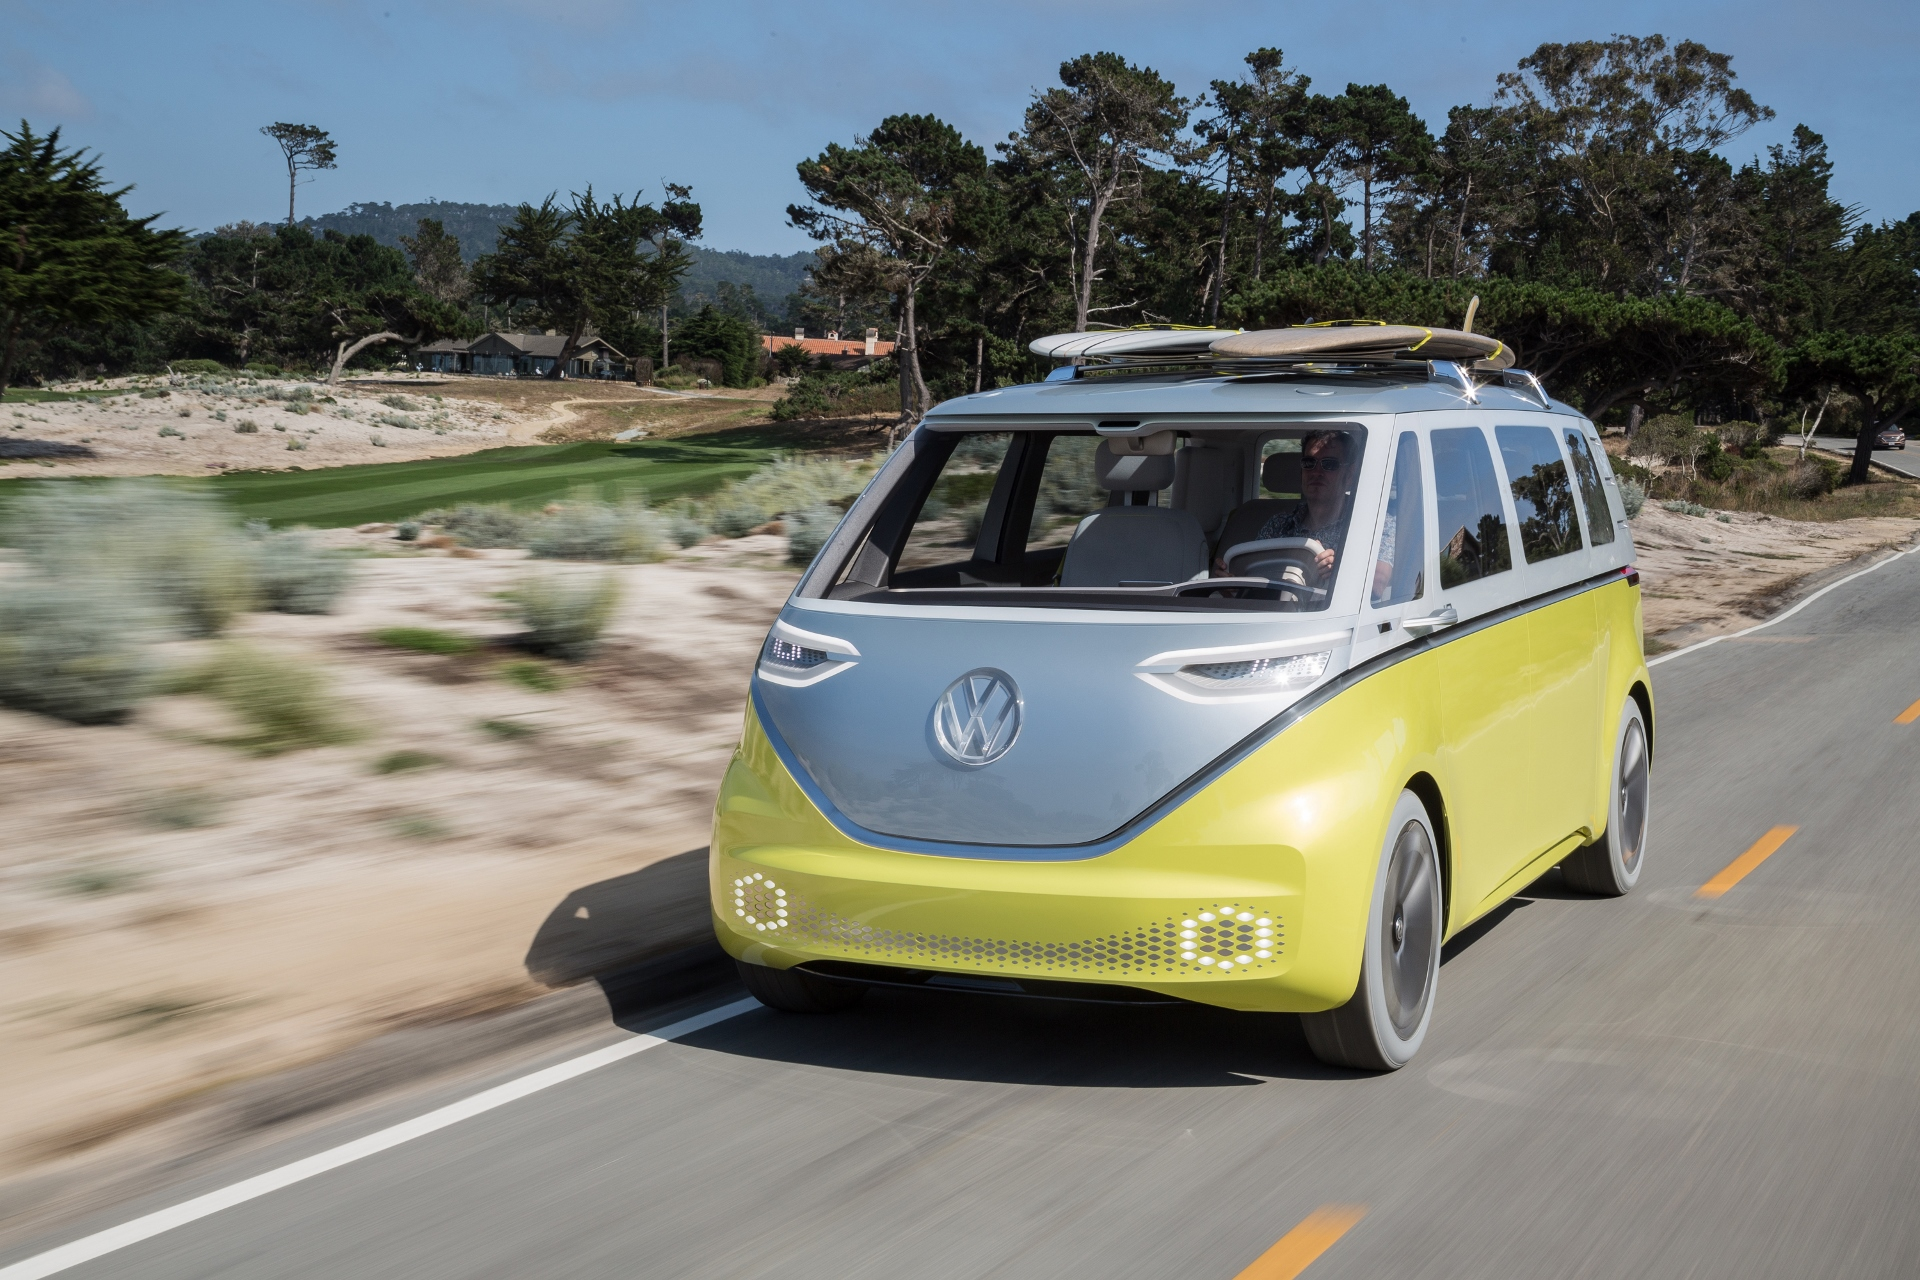 Self-driving VW vans to shuttle guests during 2022 FIFA World Cup